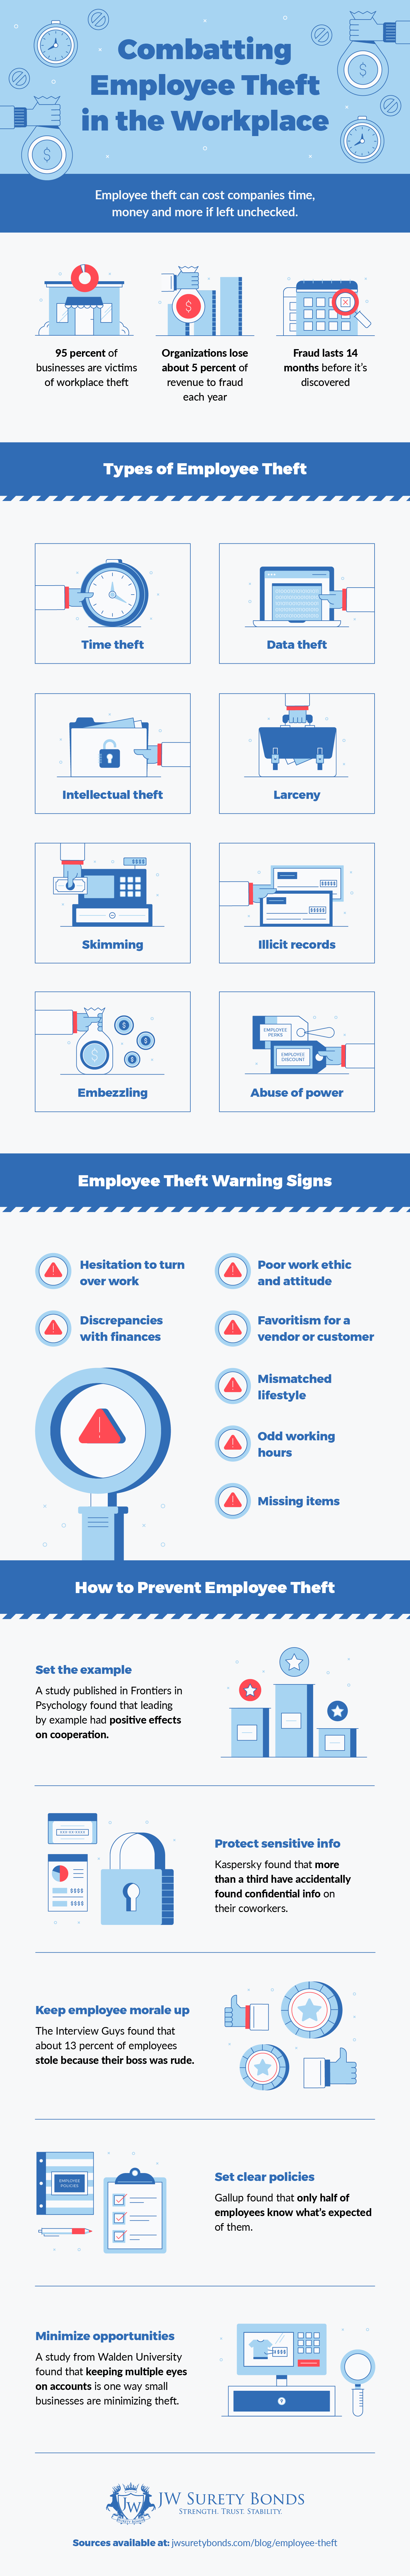 combating employee theft in the workplace infogrpahic